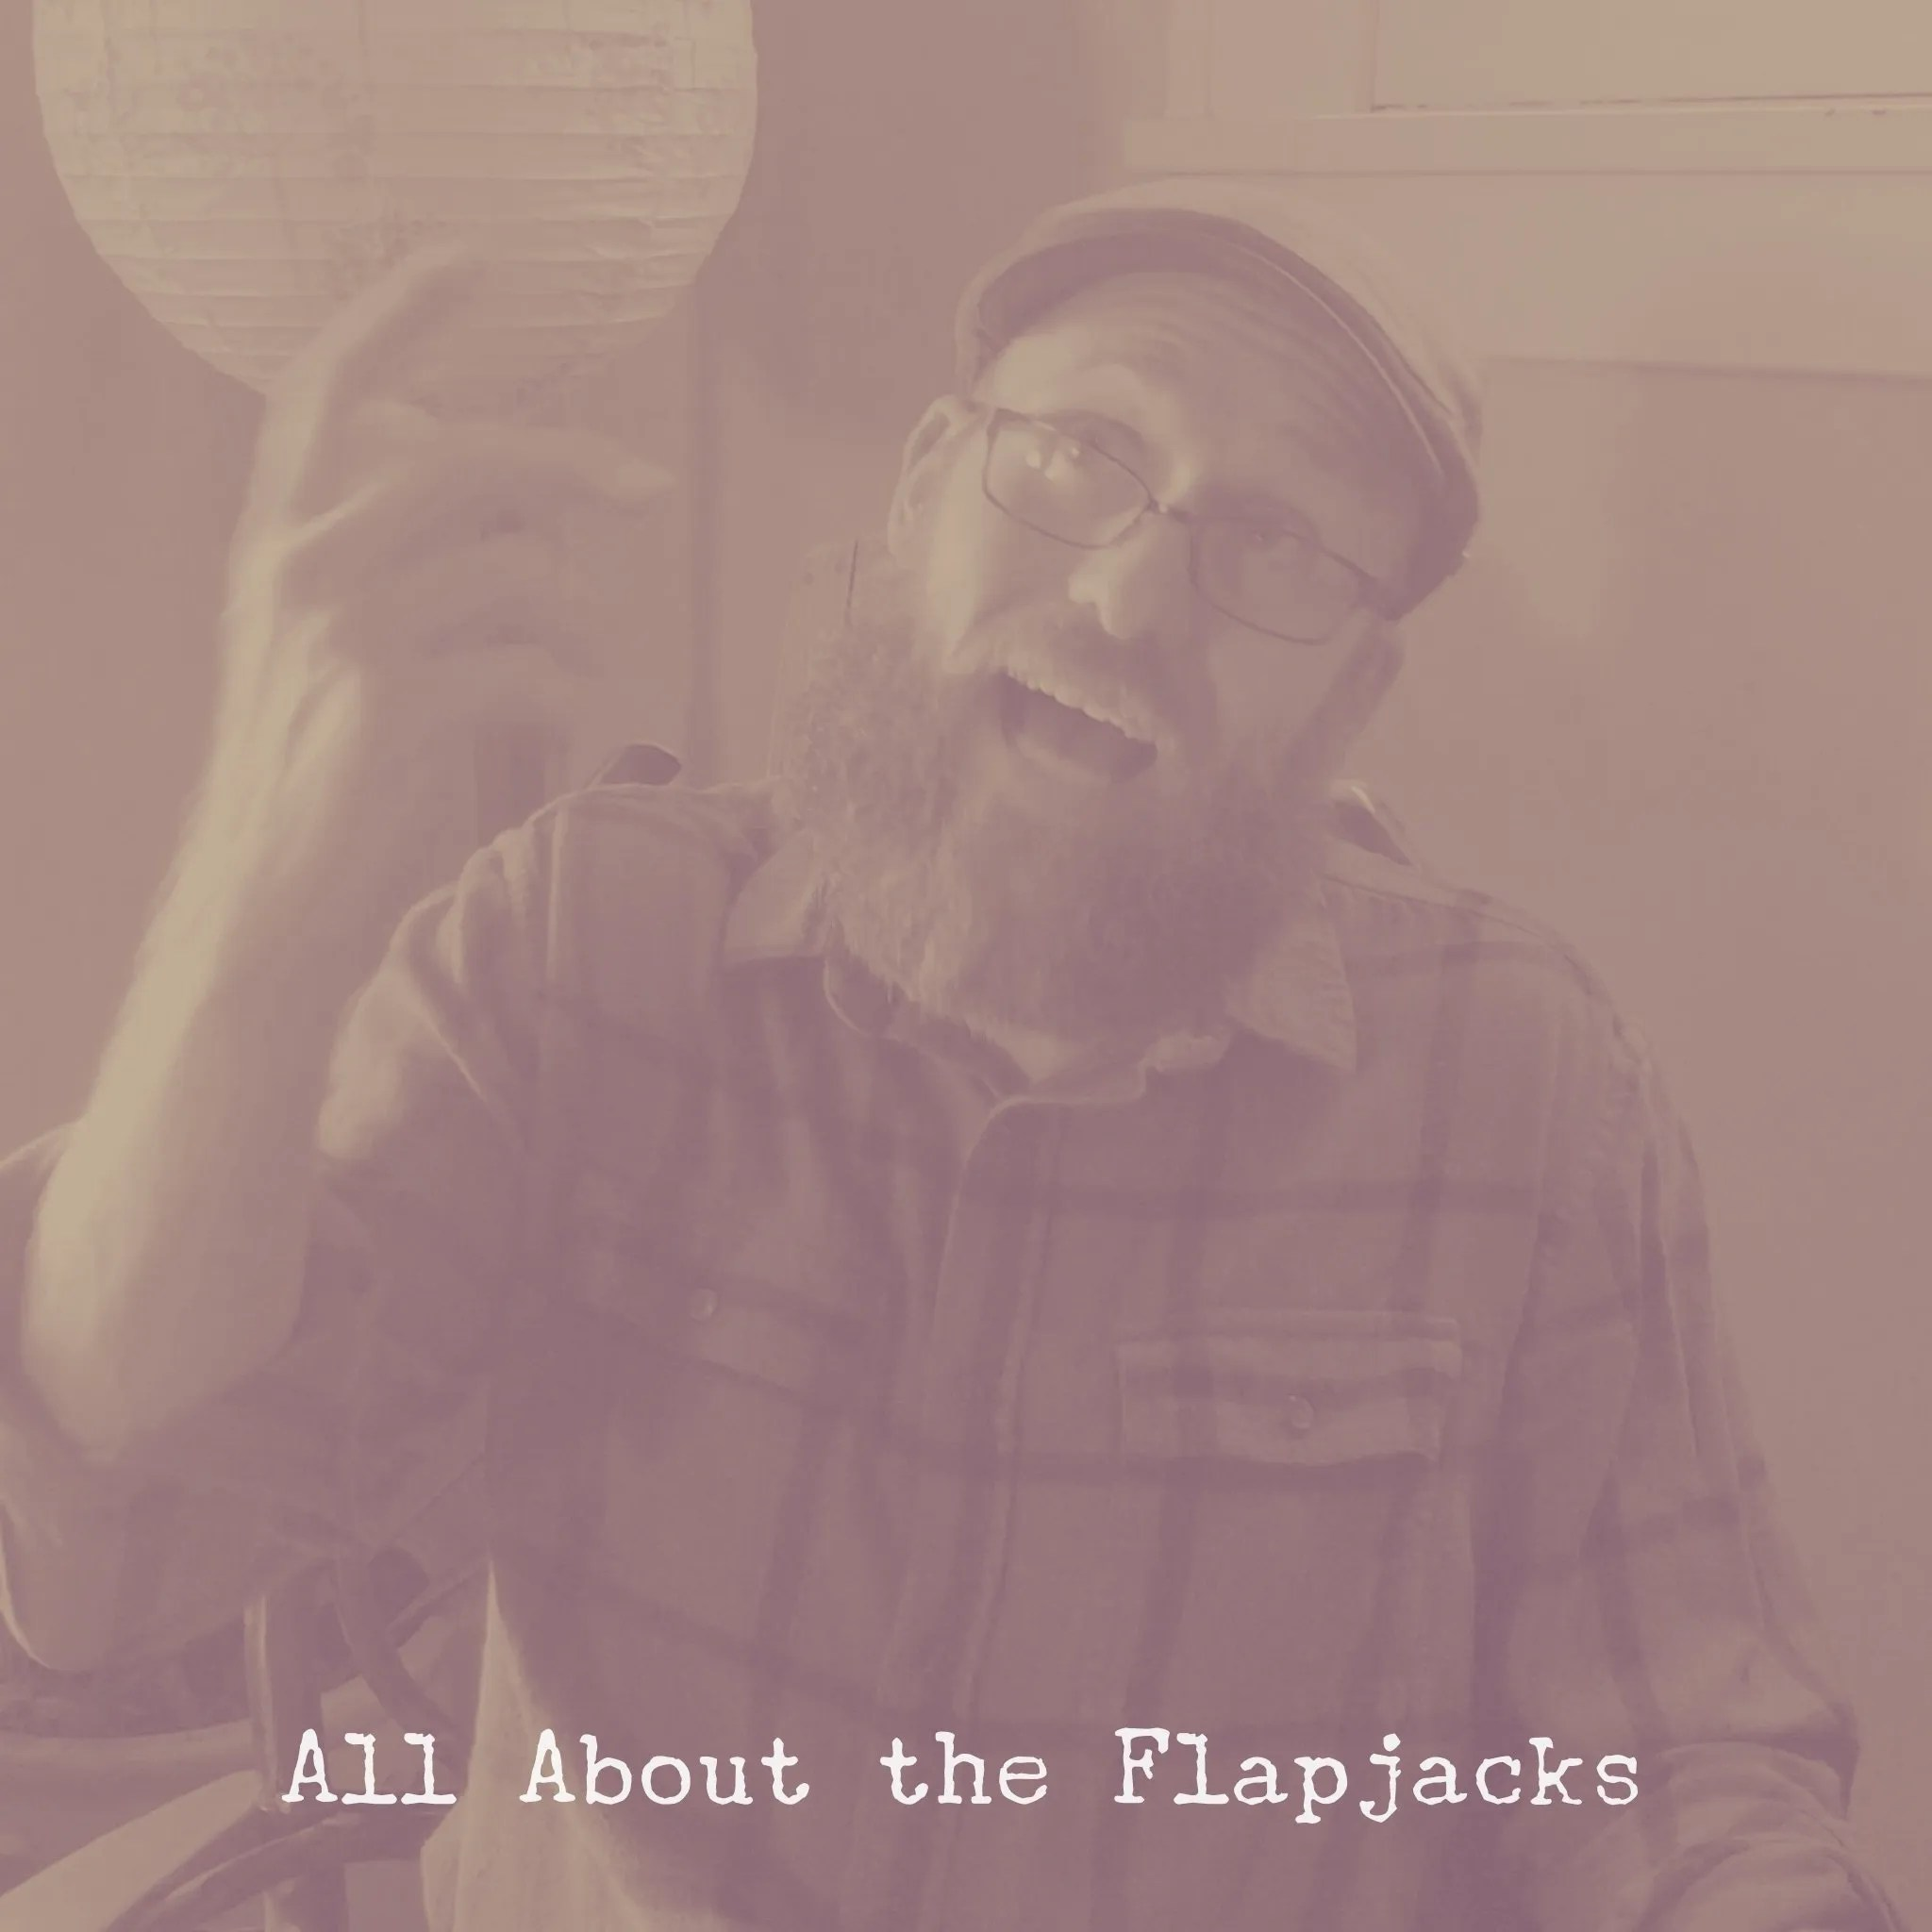 30 All About the Flapjacks